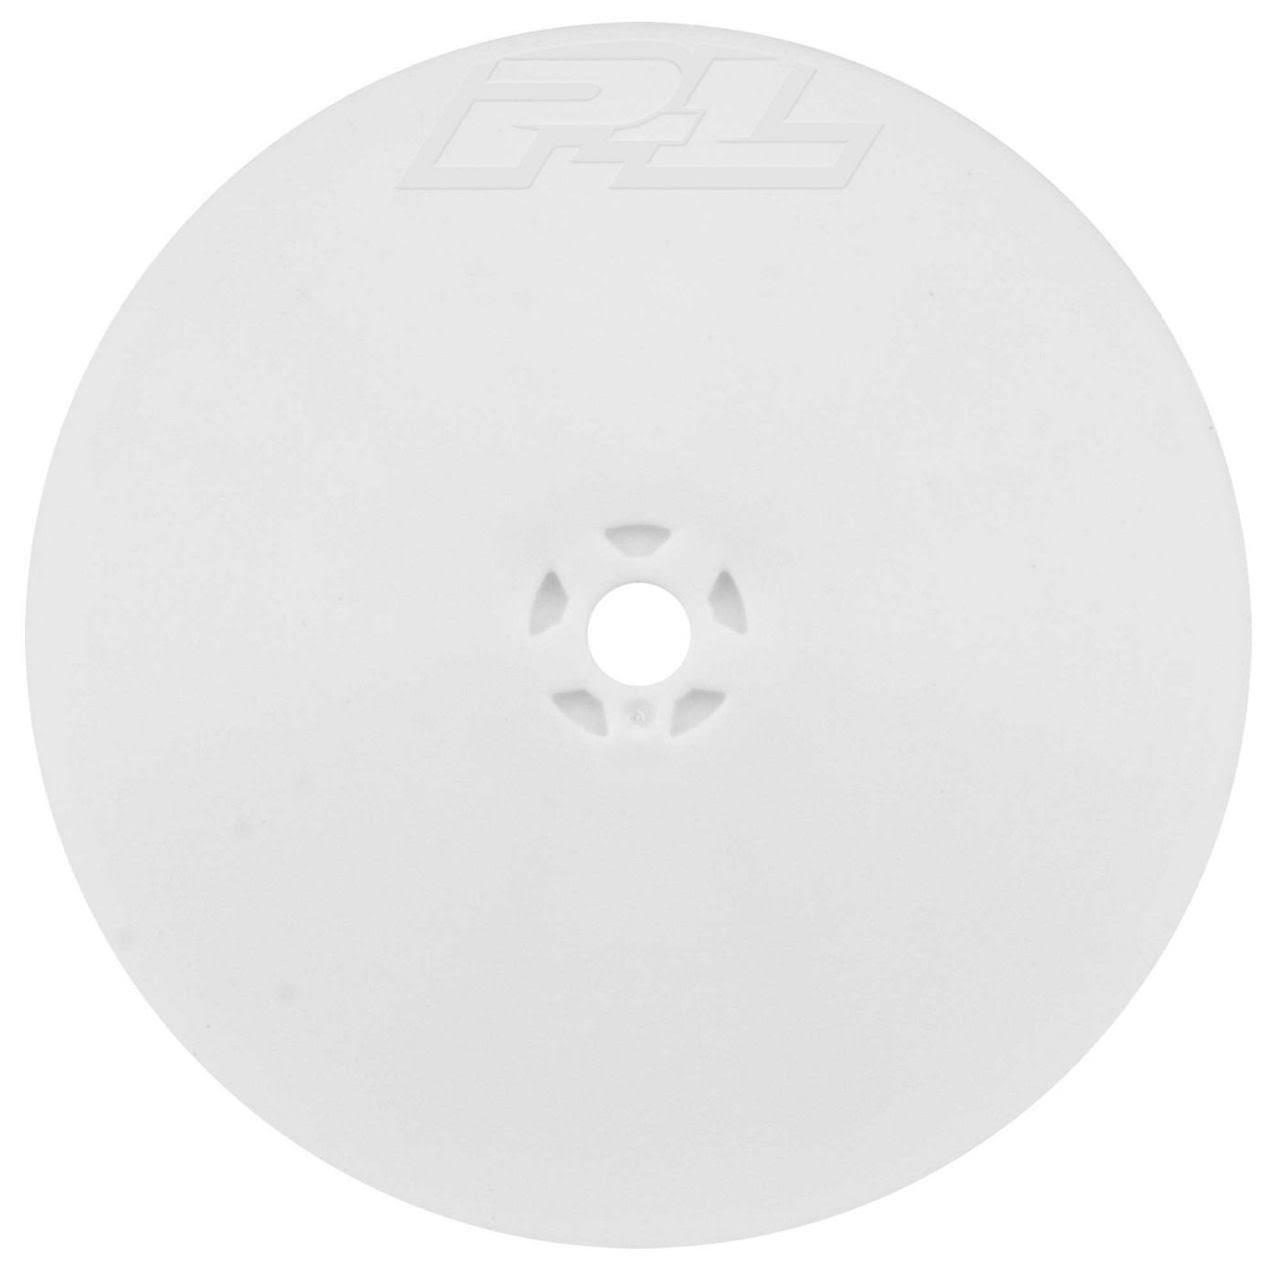 Pro-line Racing Velocity 4WD Front White Wheel for RC Car - 2.2""